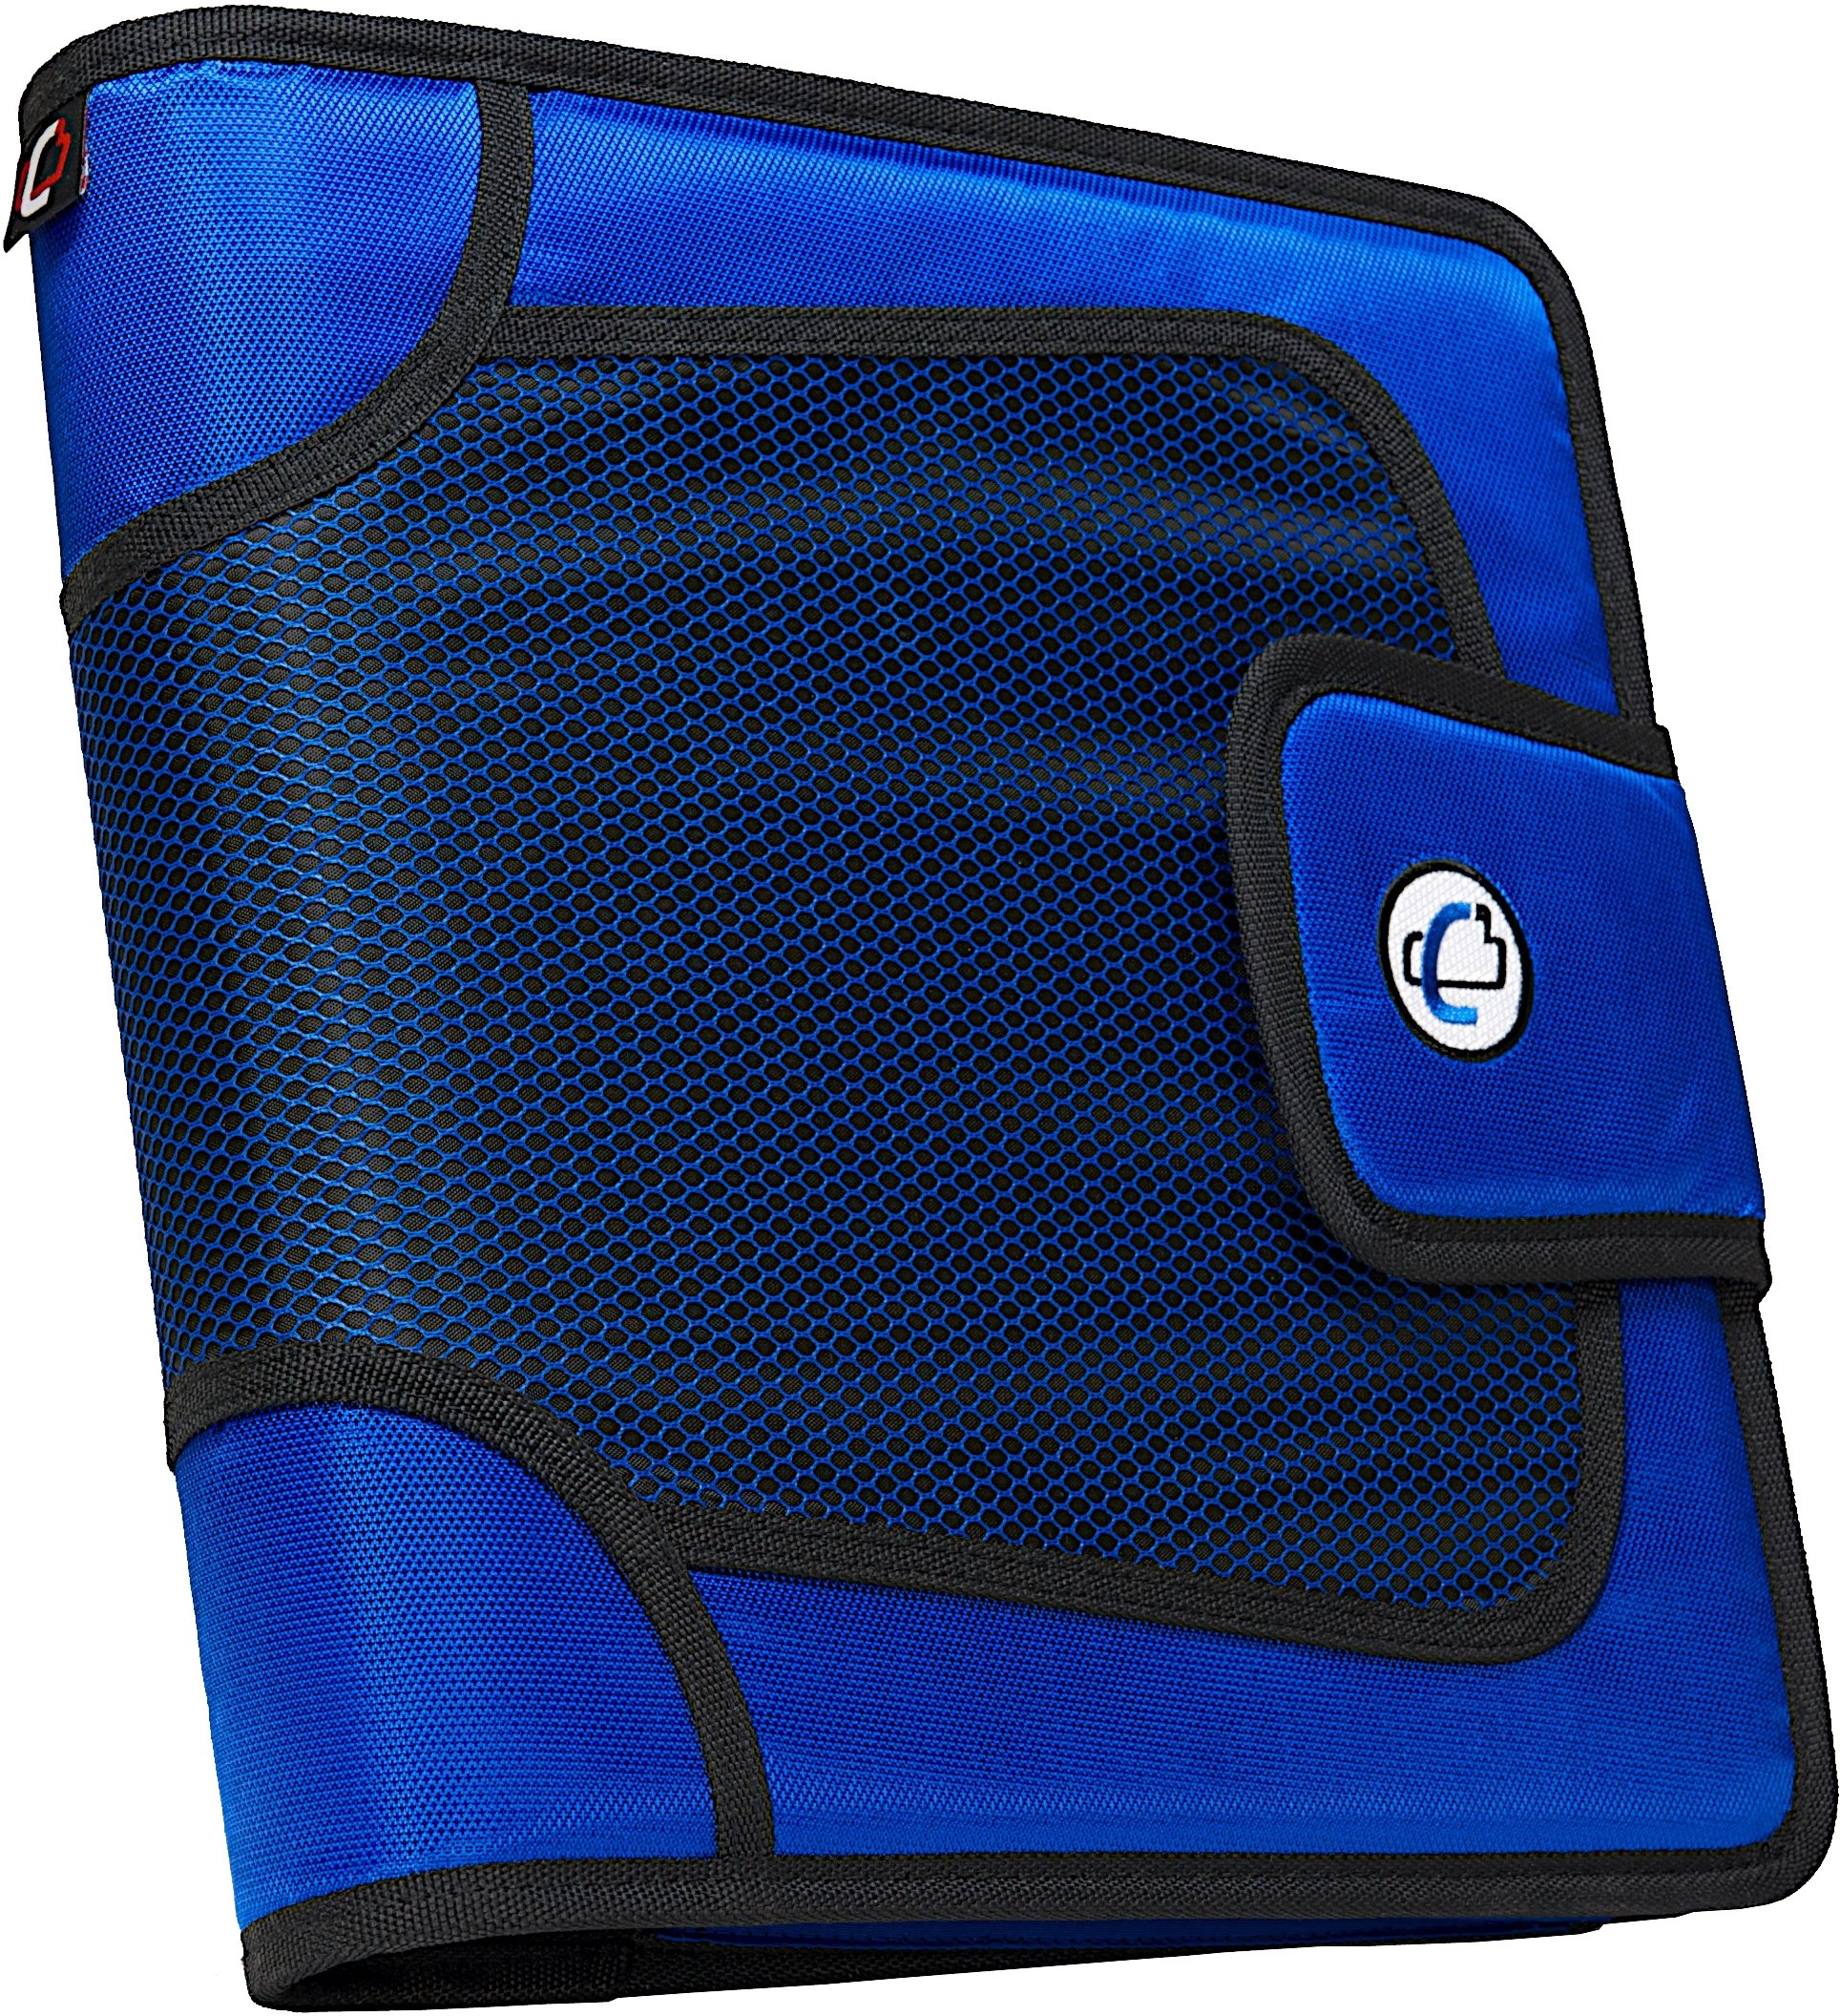 Case-it Open Tab Closure 2-Inch Binder with Tab File, Blue, S-816-BLU by Case it